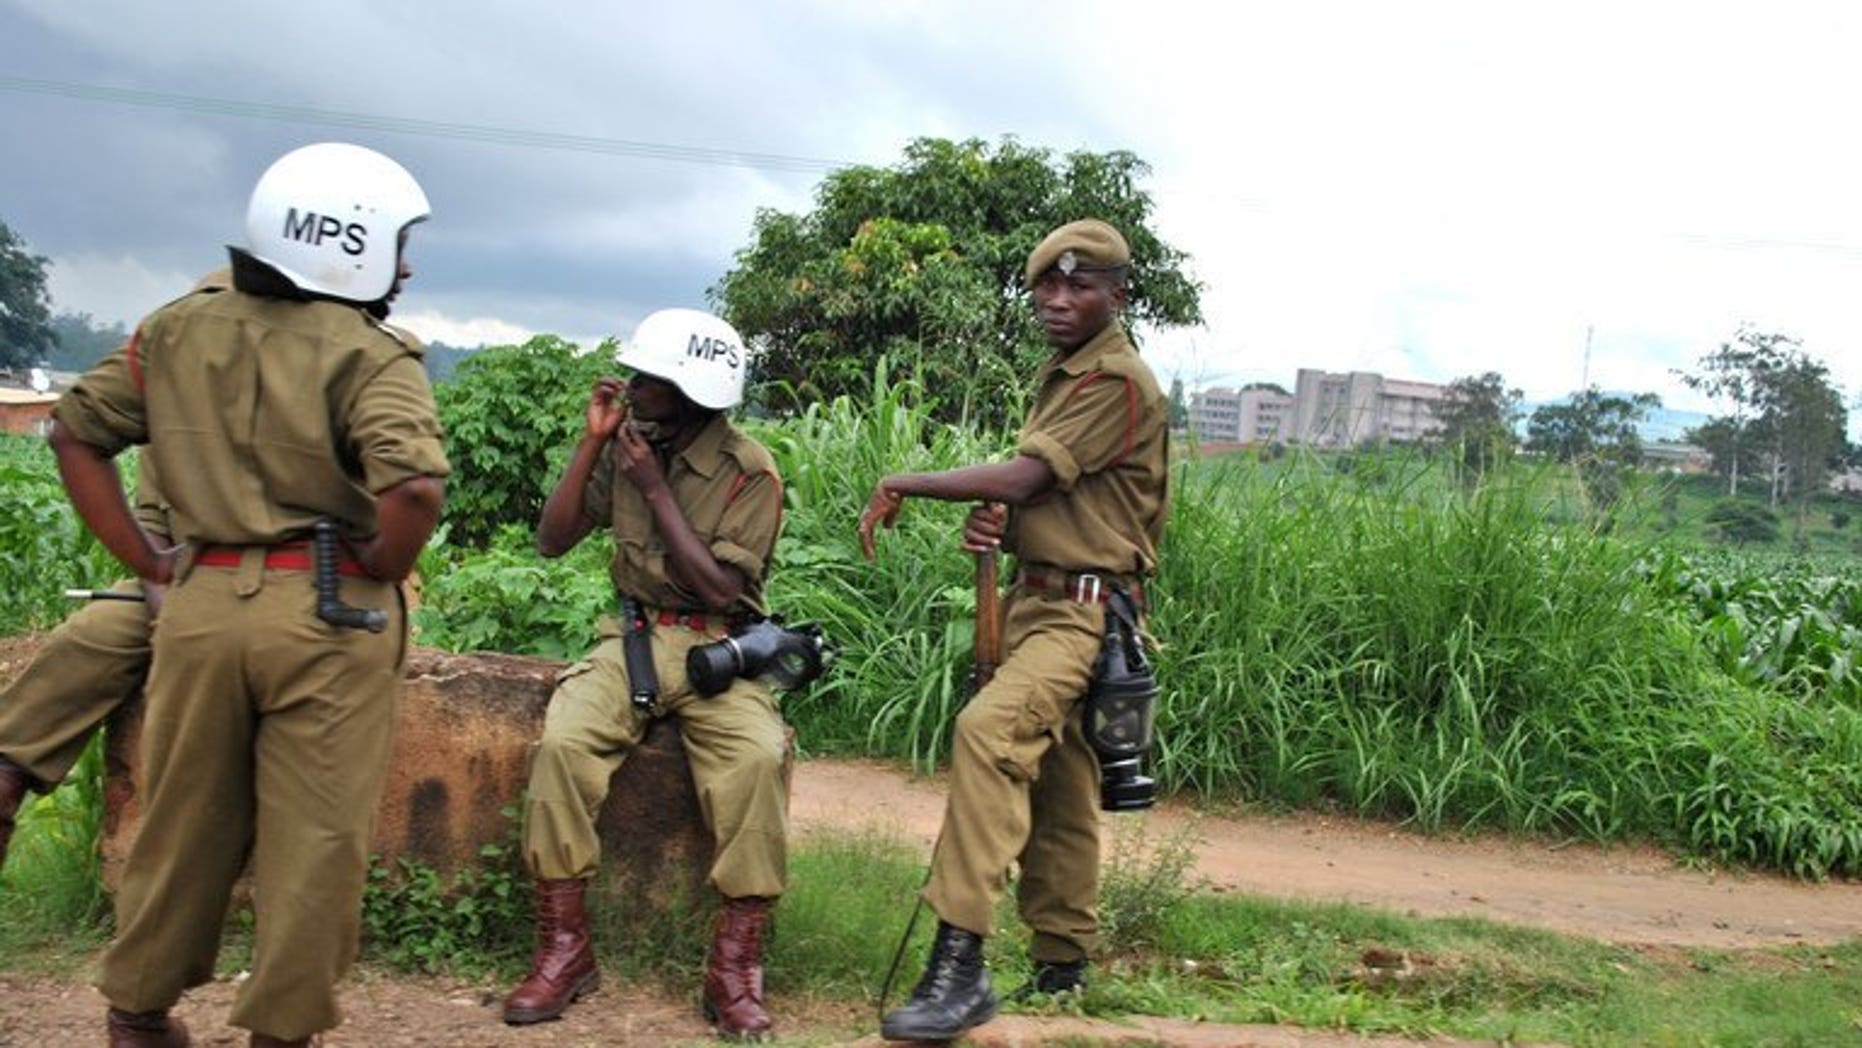 """Police officers in combat gear sot near the flea market in the Malawi capital Blantyre on January 17, 2013. Police in Malawi said Tuesday they had arrested a 37-year-old man and charged him with breaching the peace, after he allegedly called President Joyce Banda """"stupid."""""""